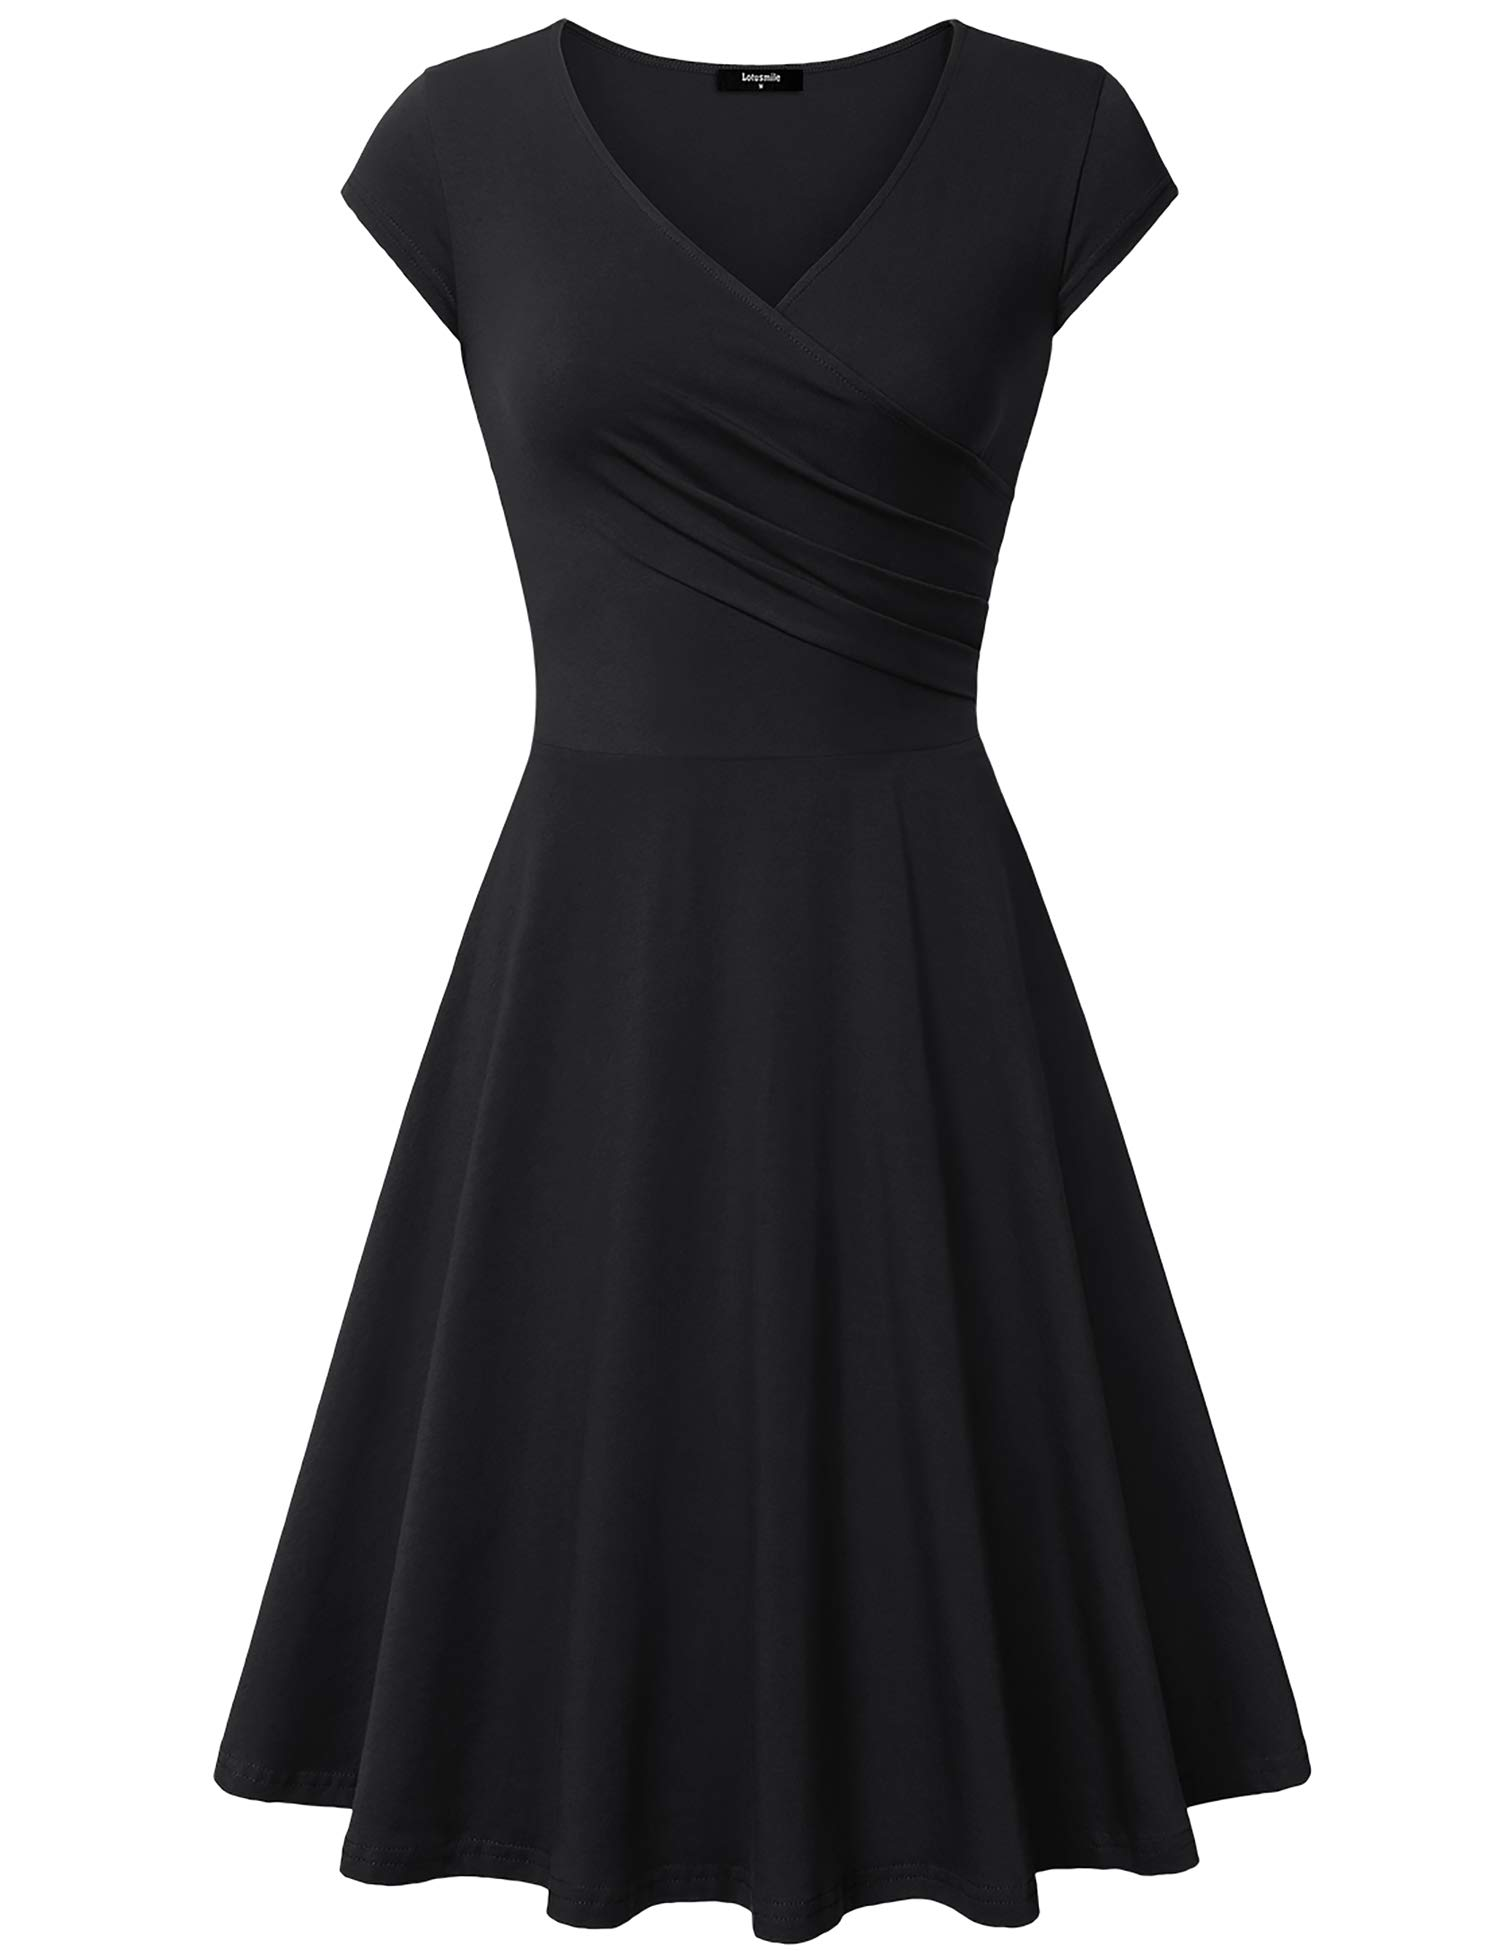 Lotusmile Graduation Dress, Women Sexy Cocktail Vintage Business Affordable Dress,Large All Black